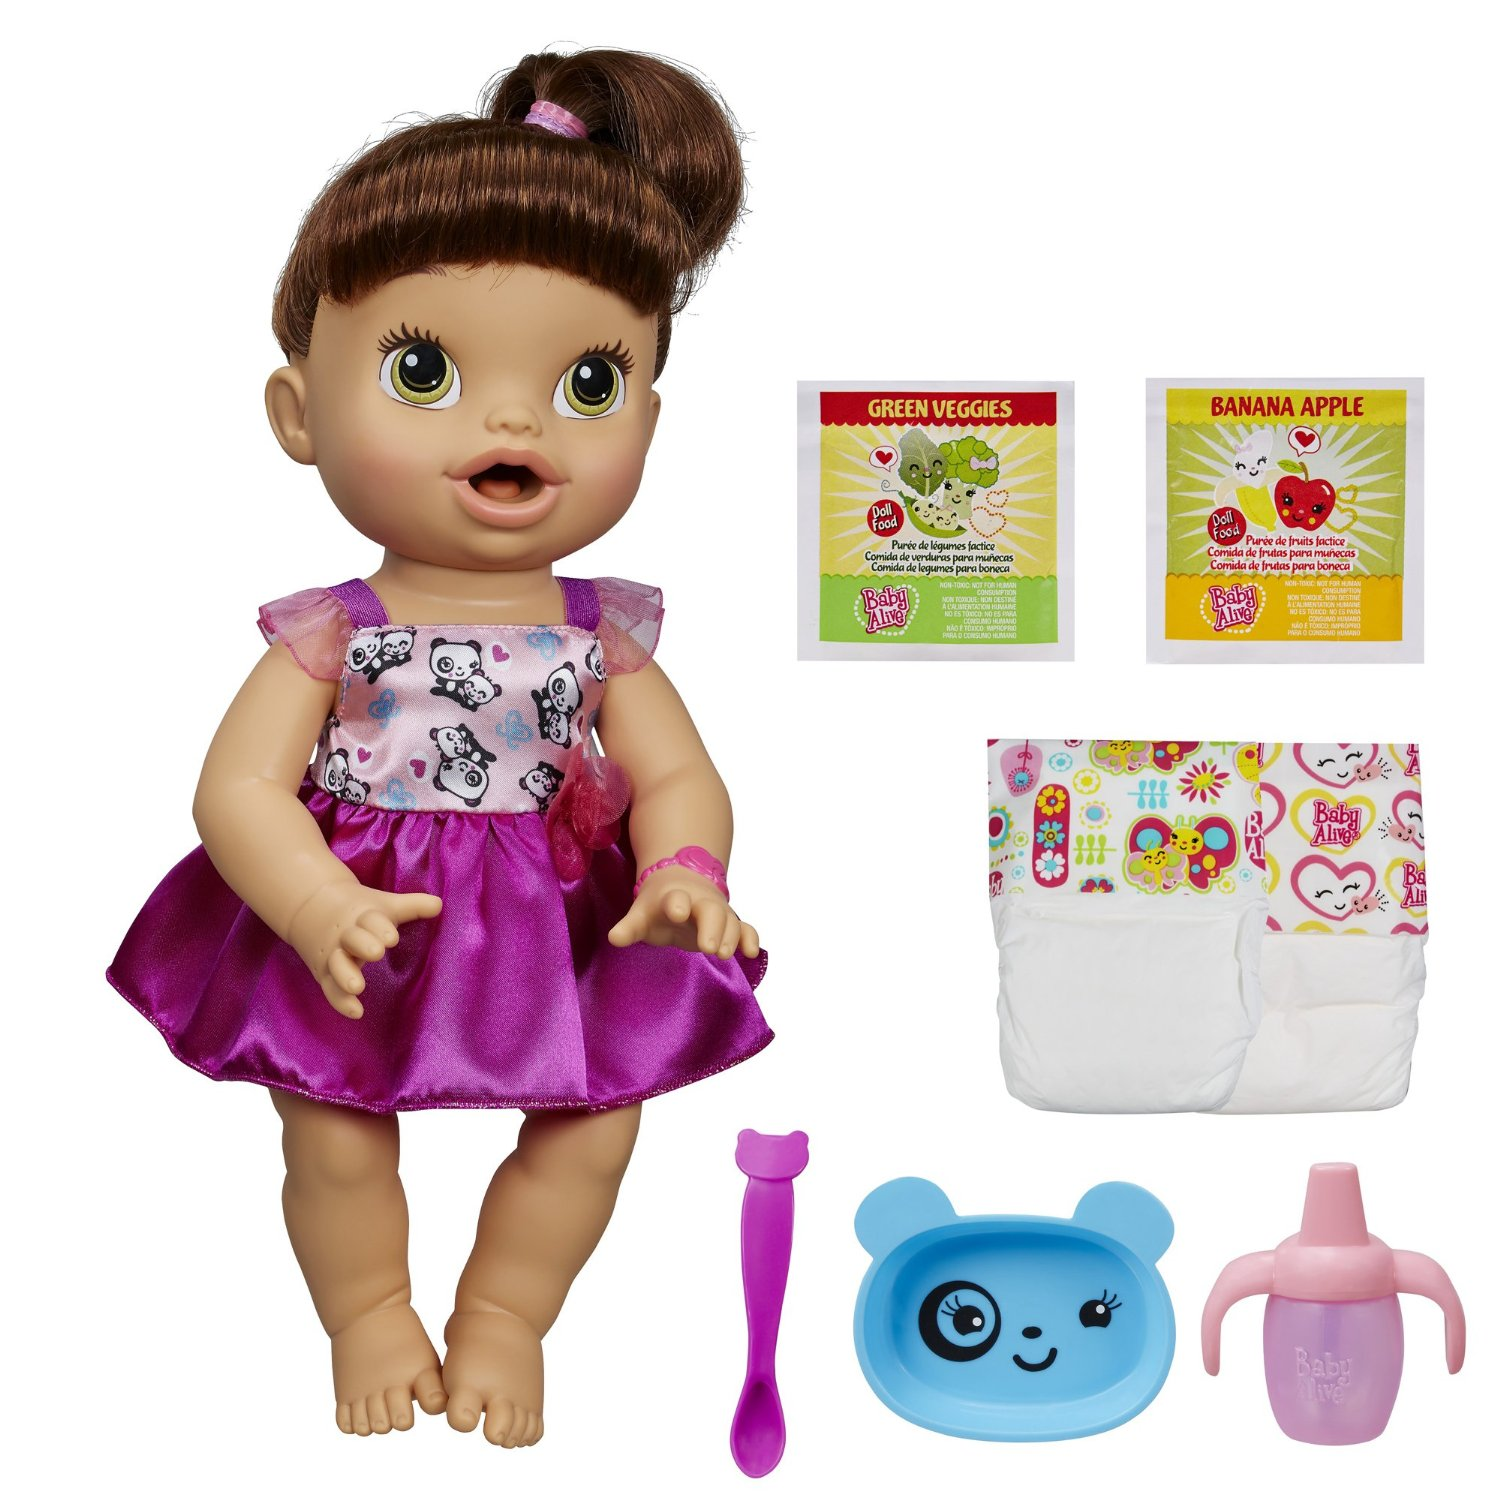 Baby Alive My Baby All Gone Doll $24.88! (lowest price)